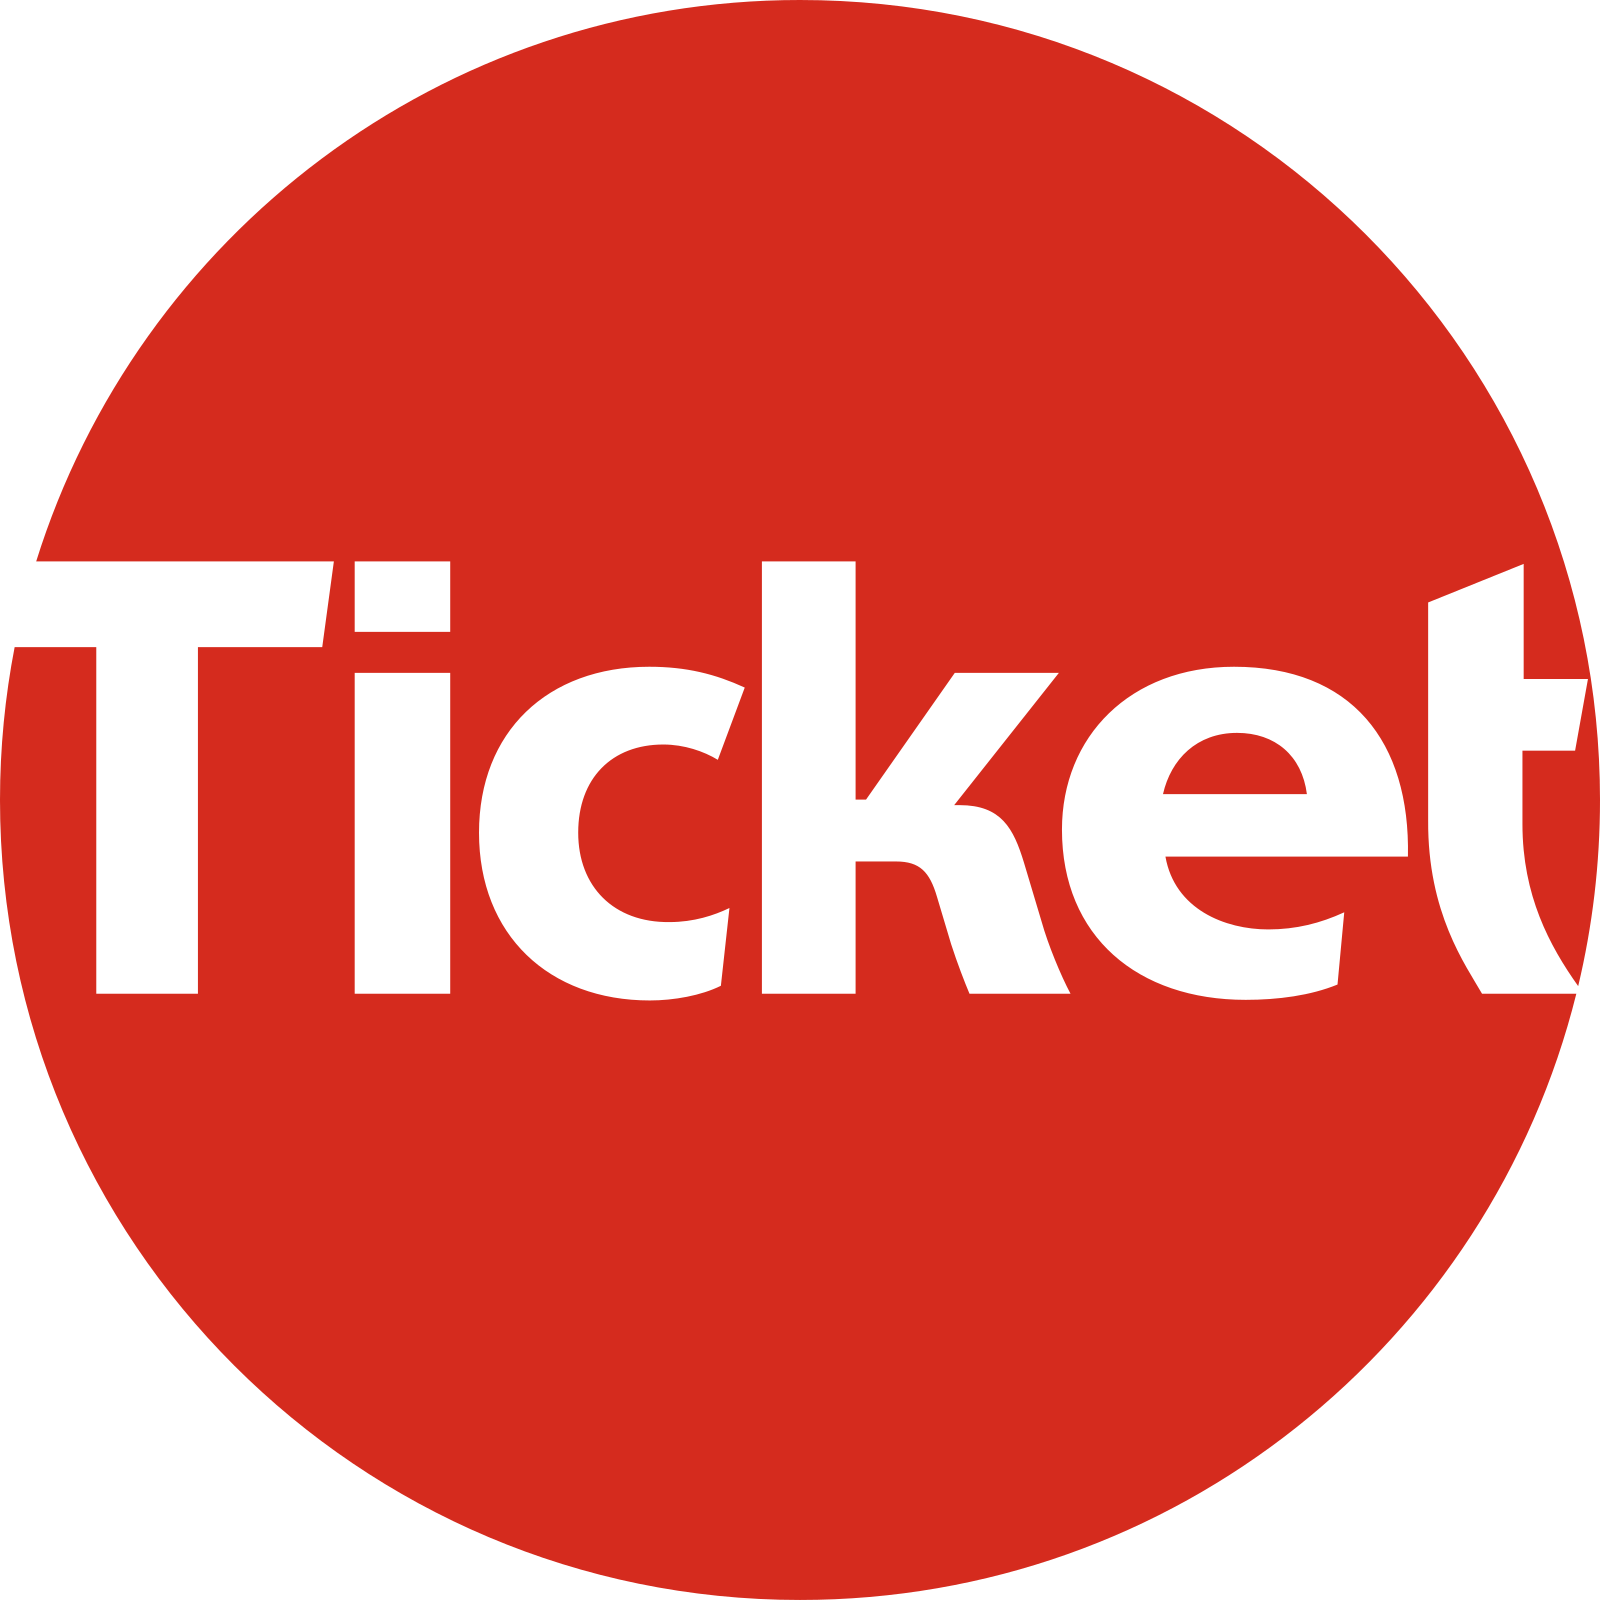 ticket-logo-4